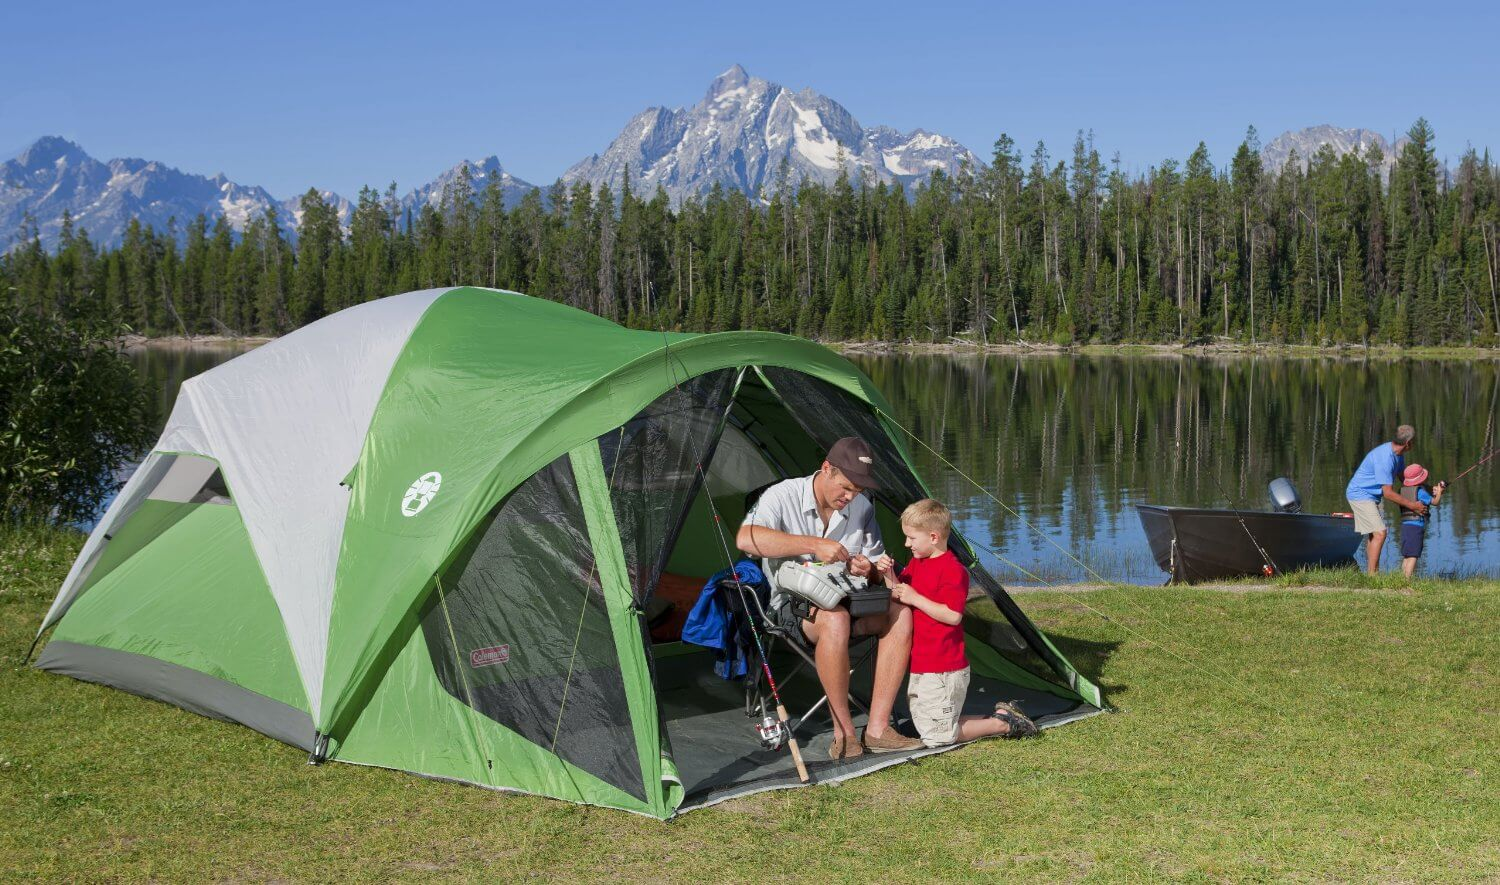 Coleman Evanston Screened Tent Review The Camping Corner